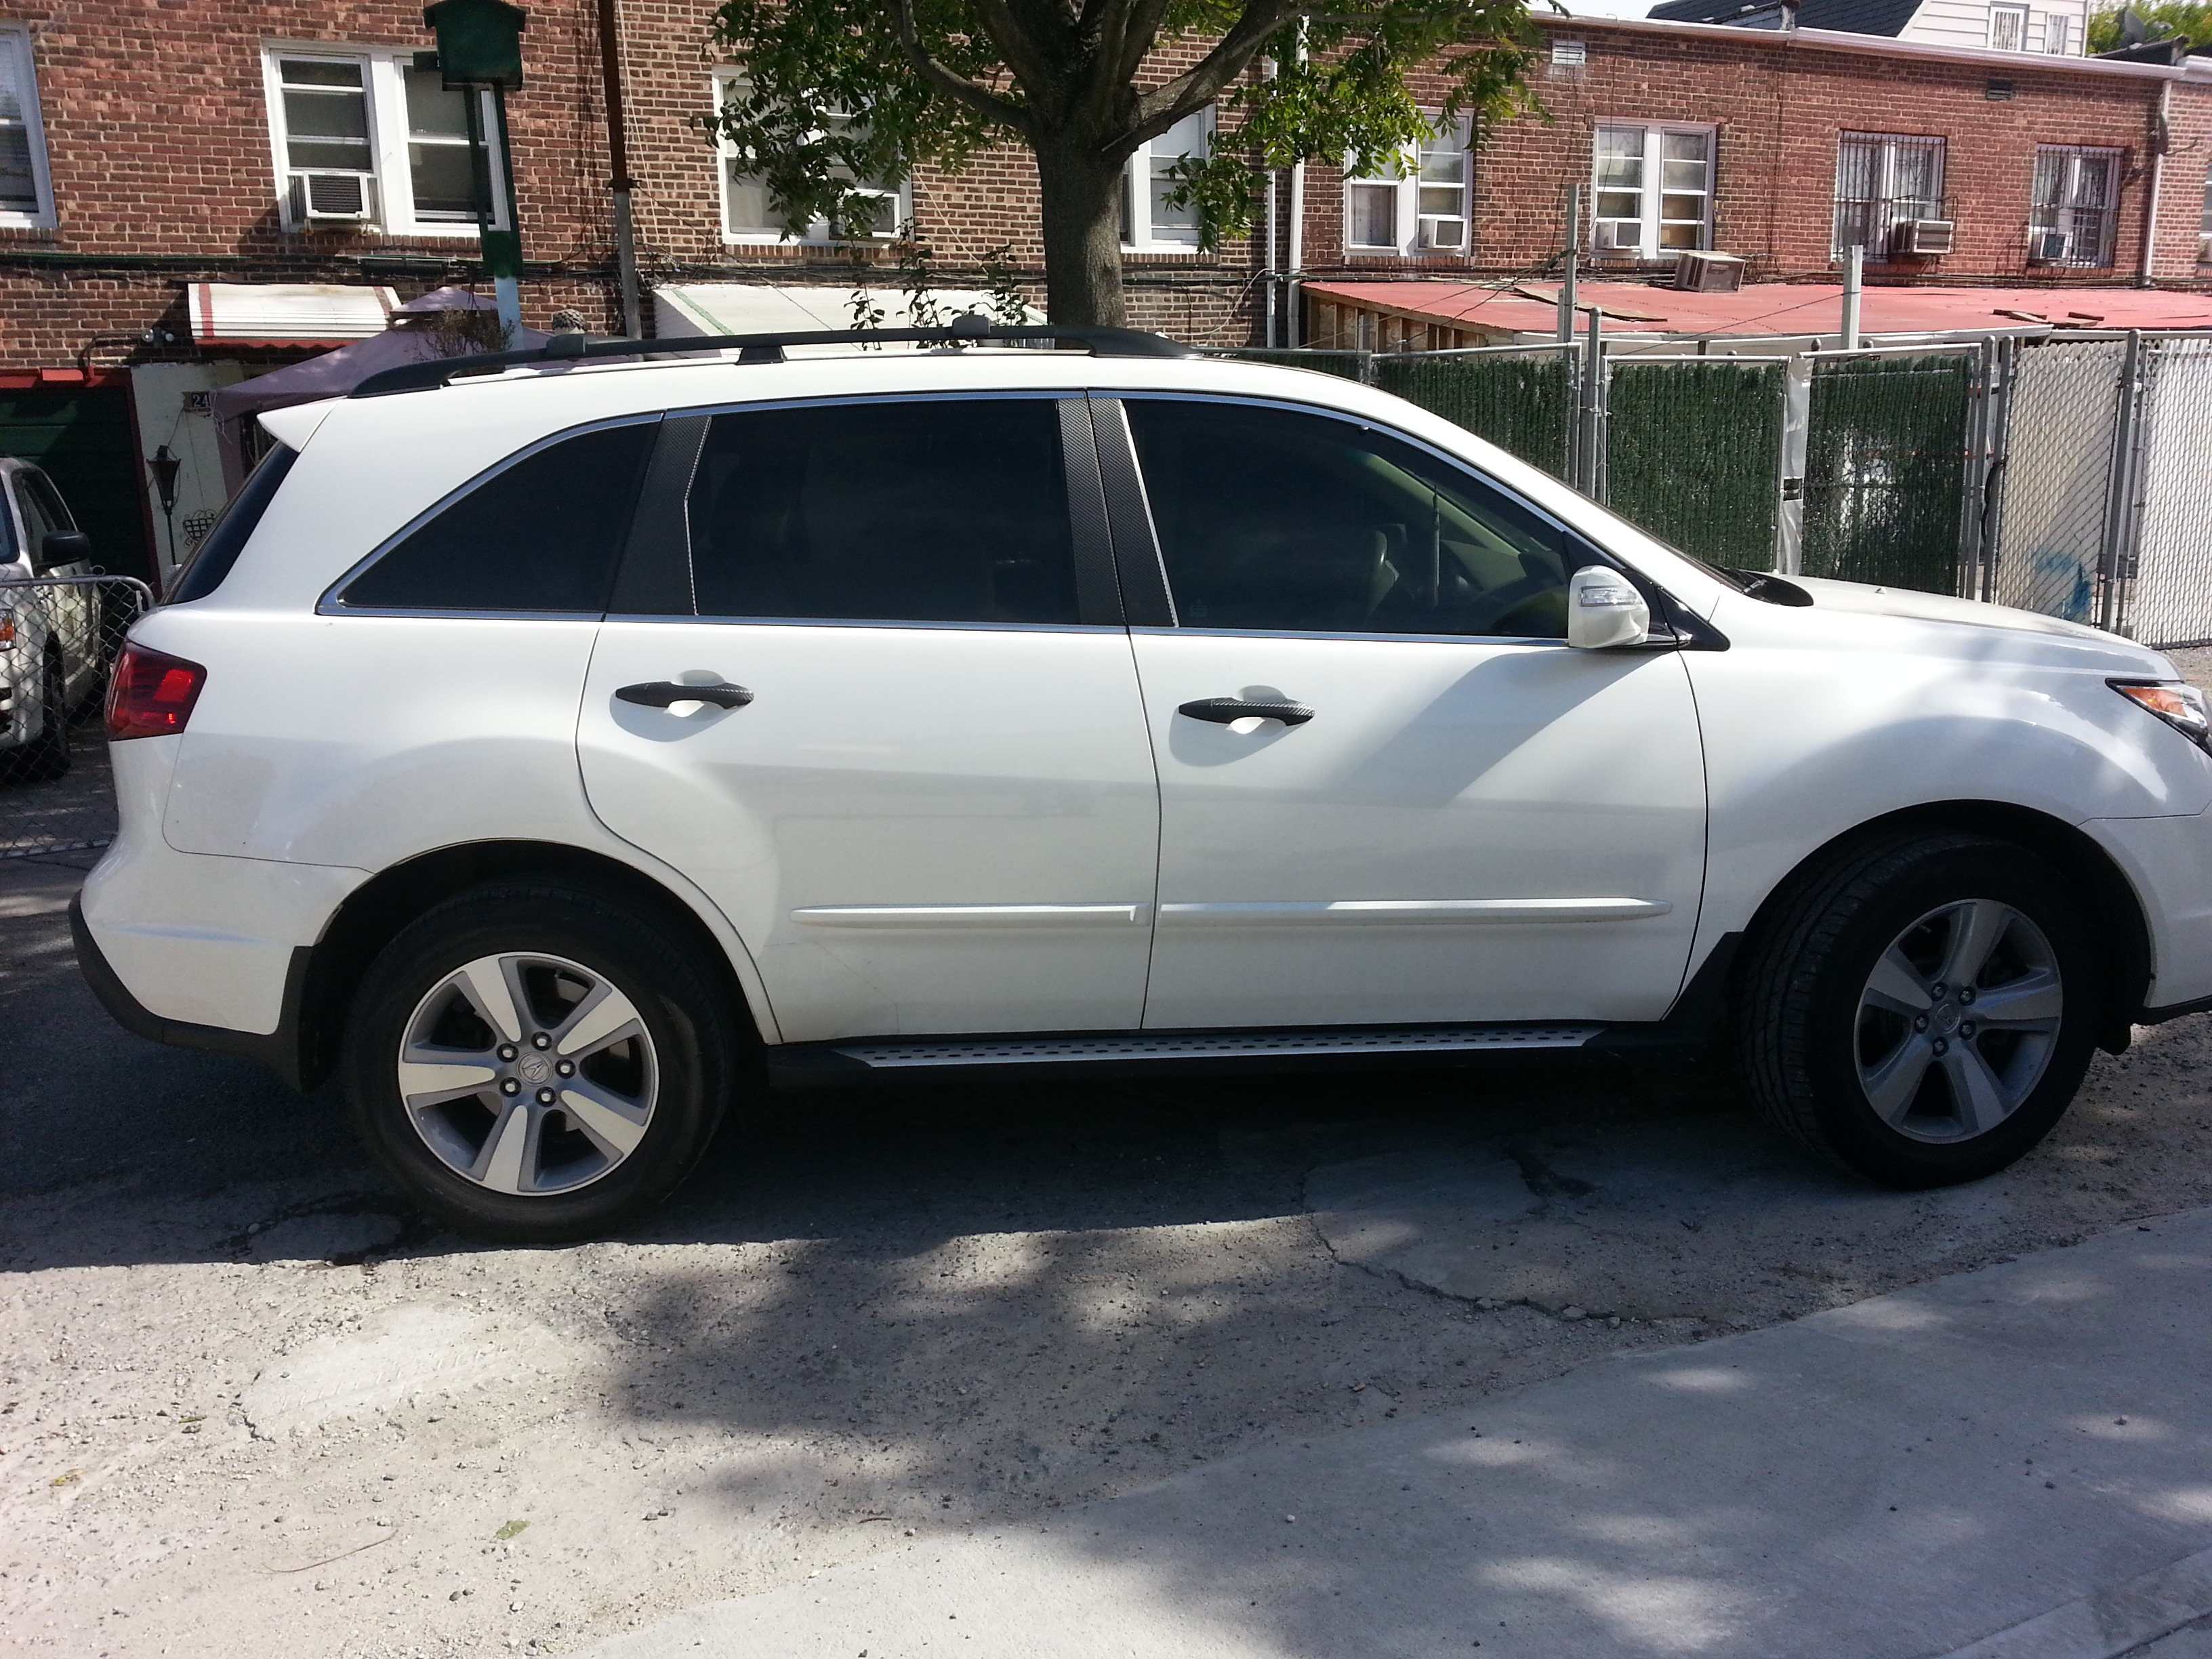 sale cuir nissan saint ouvrant hyacinthe rdx acura toute awd in inventory toit en used for vehicle equipe